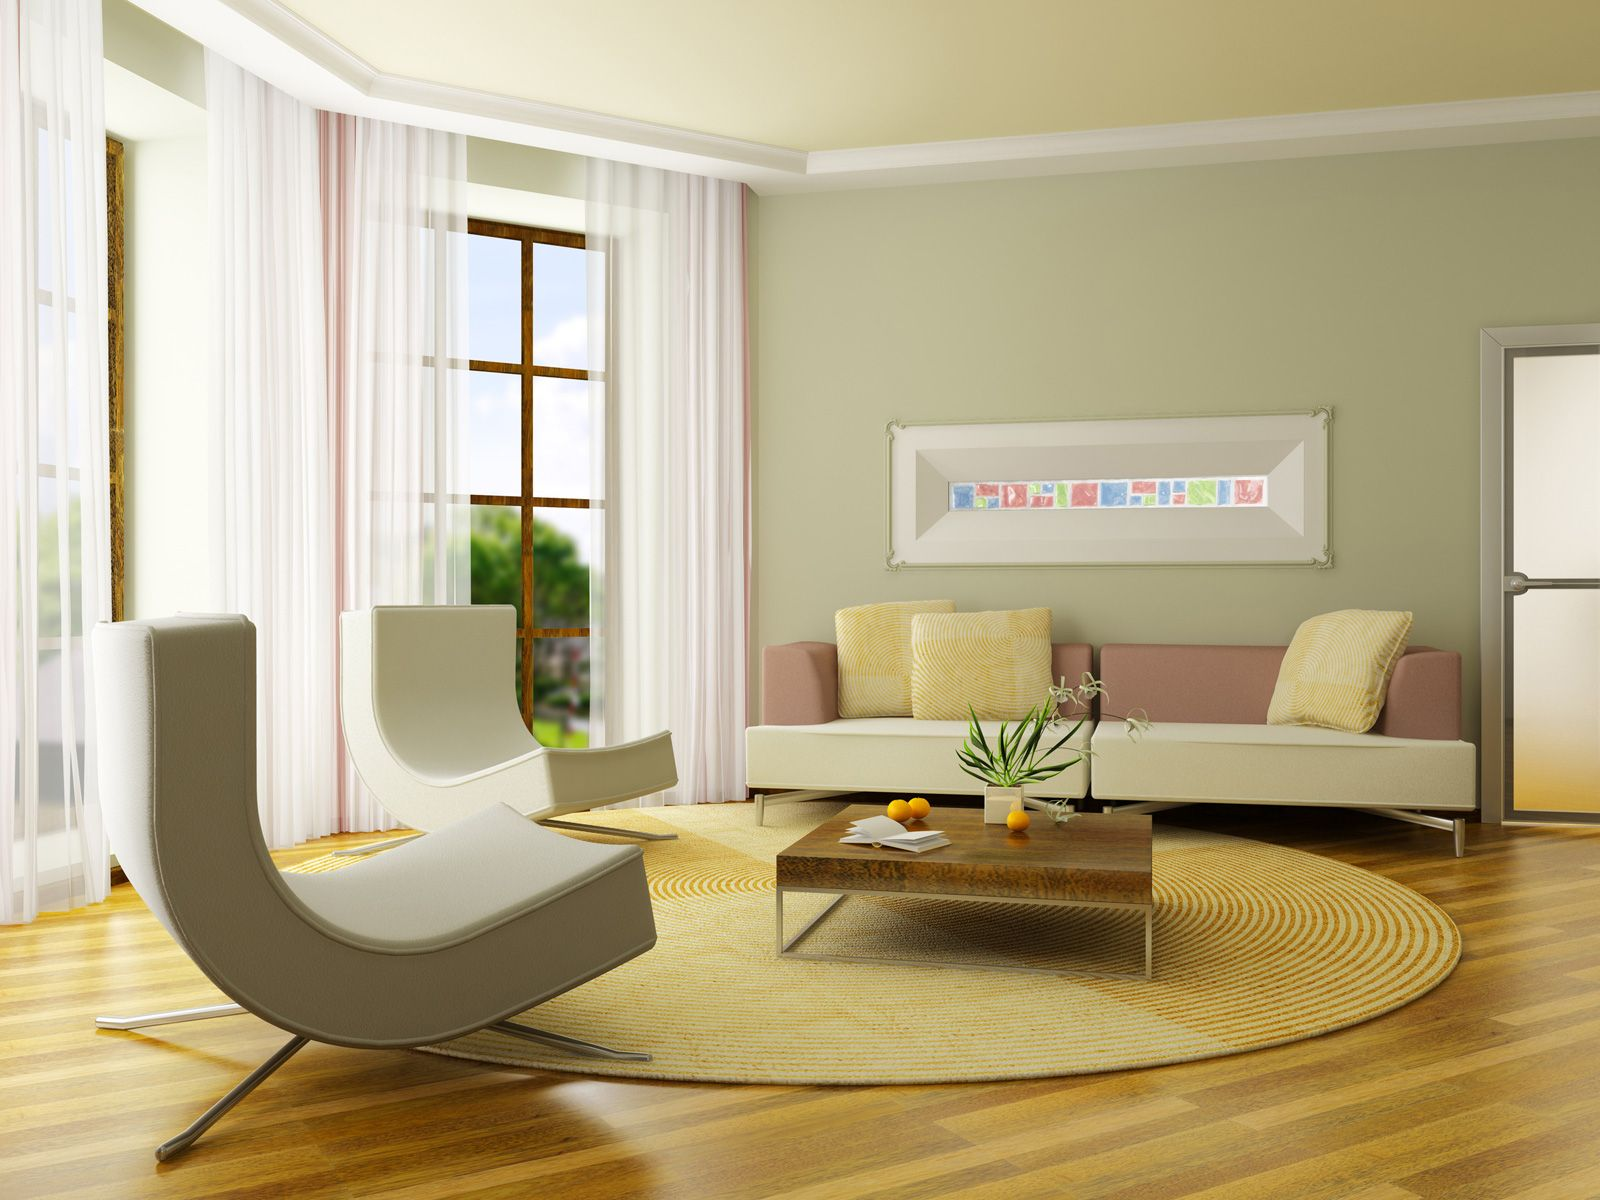 Modern Minimalist Interior Designs For Living Rooms Nice Curtains Window Room Design And